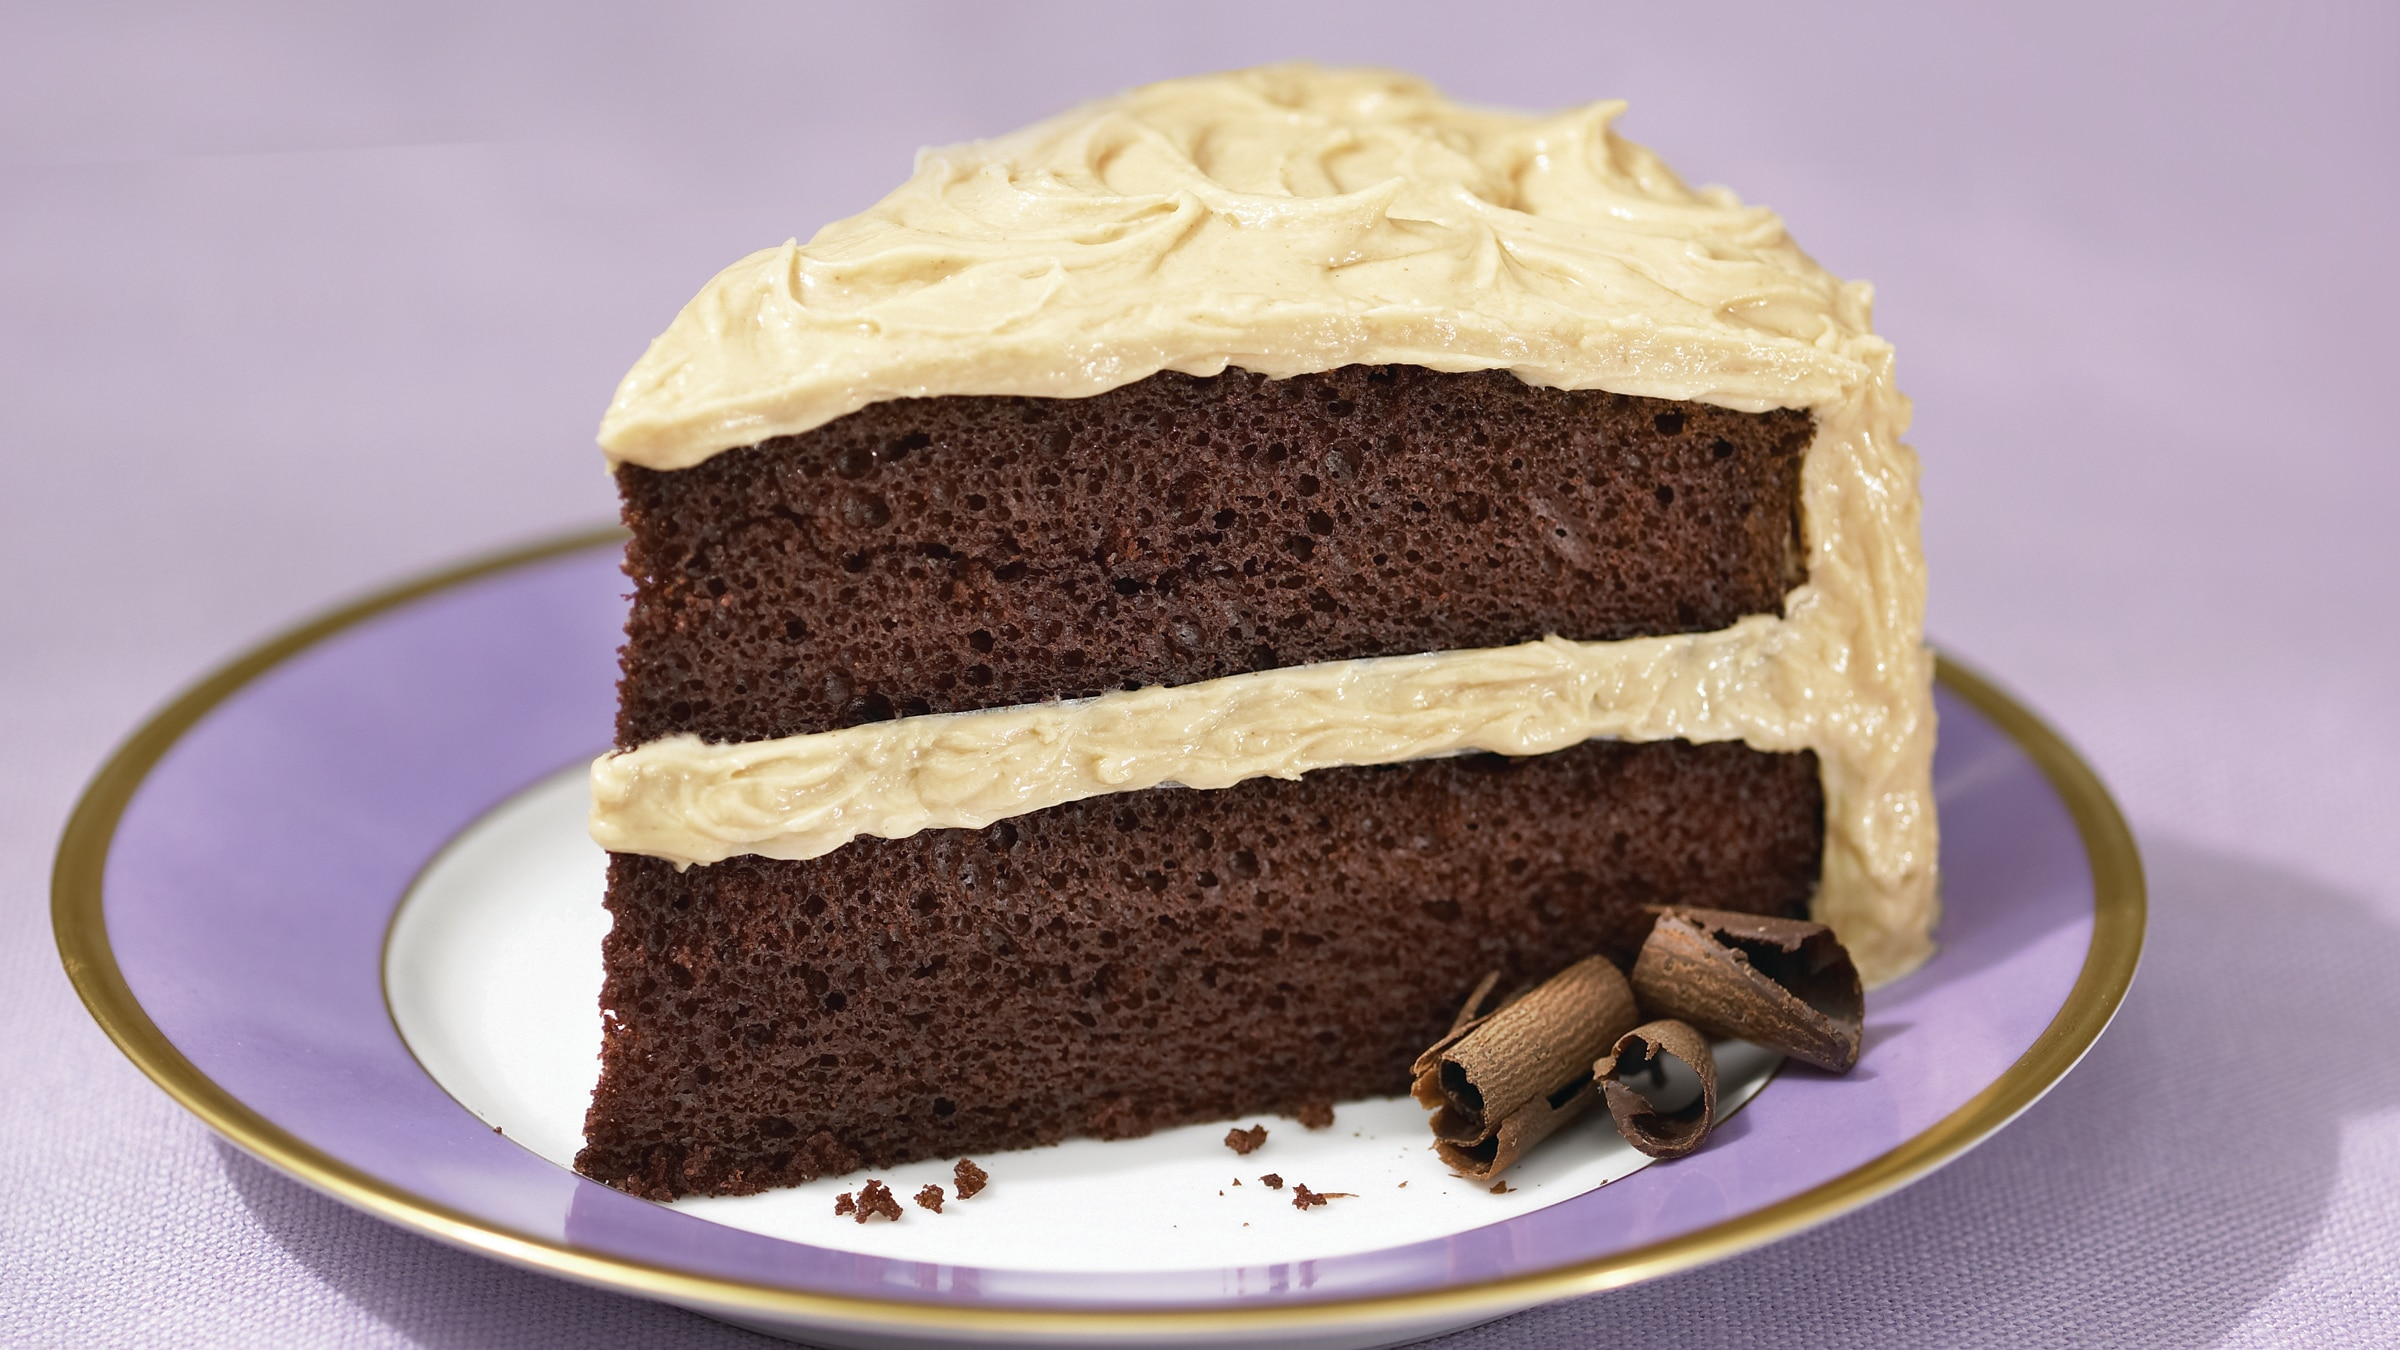 Peanut Butter Frosting Chocolate Mayonnaise Cake